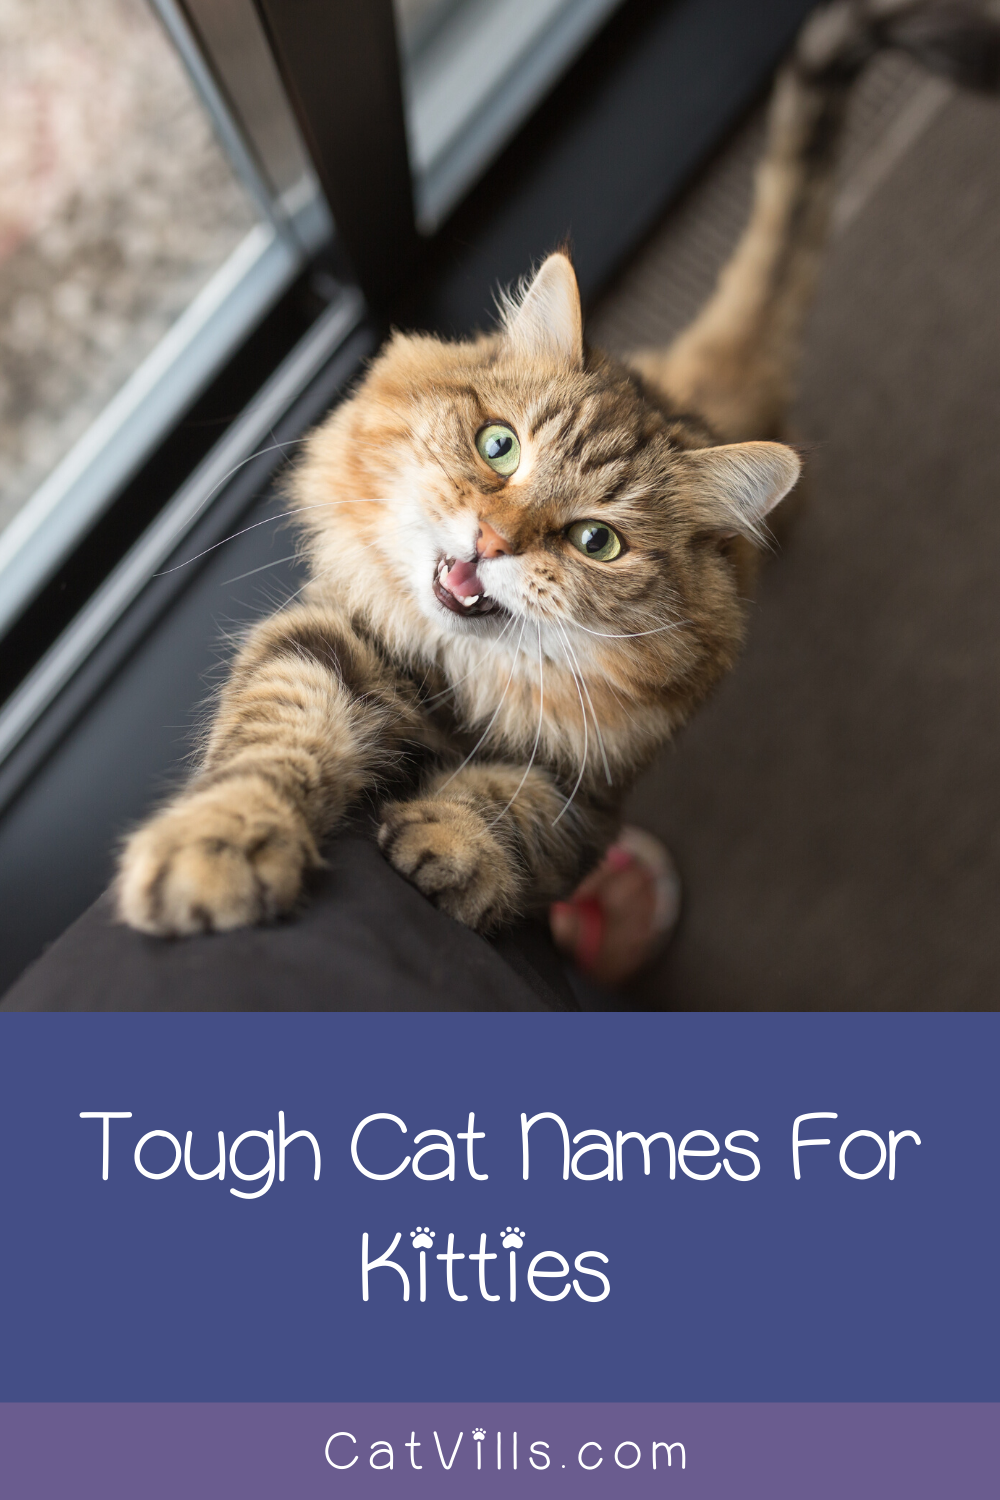 100 Totally Badass Cat Names for Tough Kitties in 2020